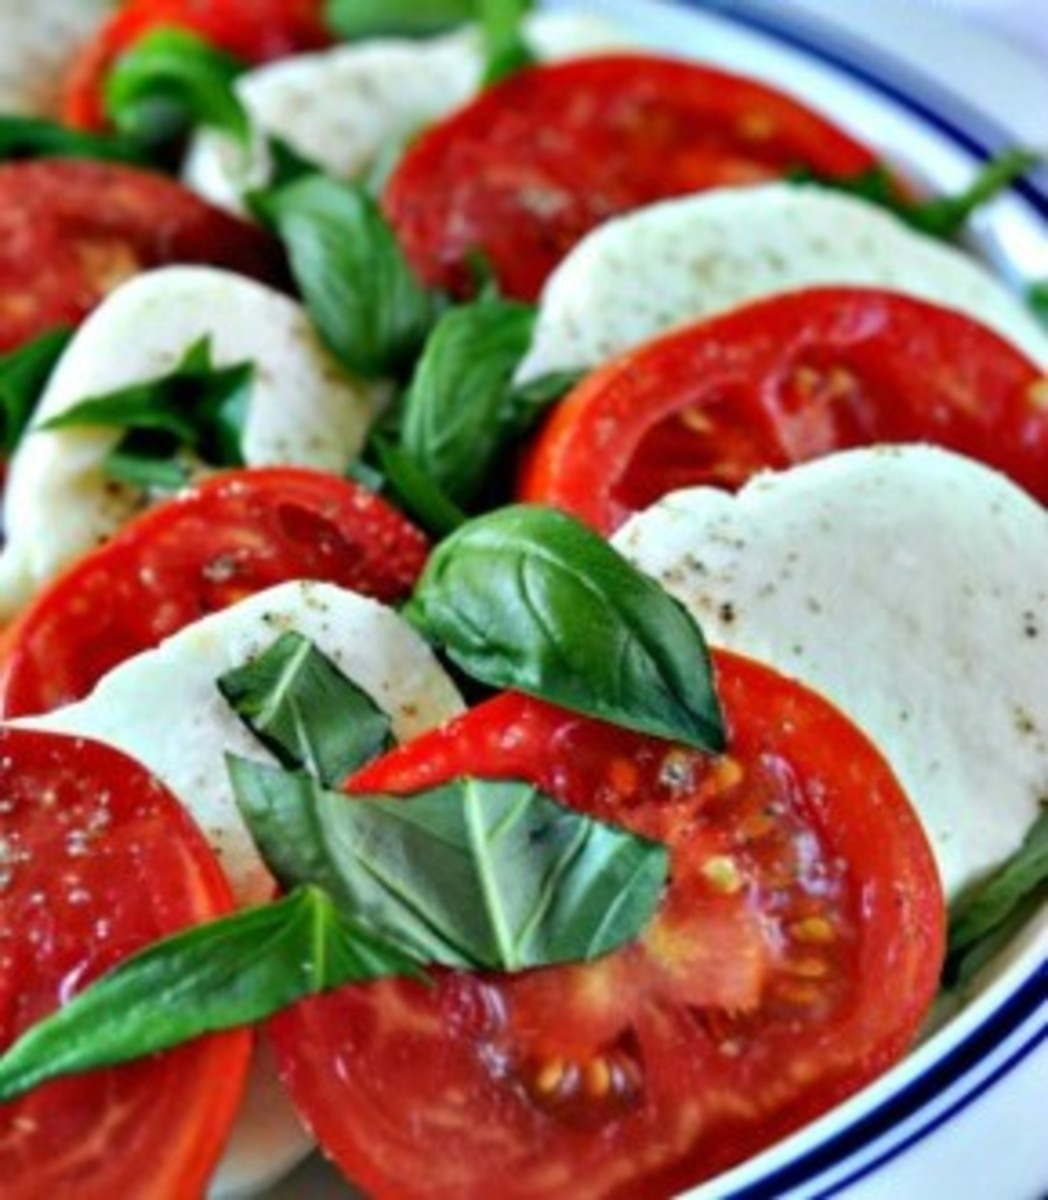 Basil in Caprese Salad